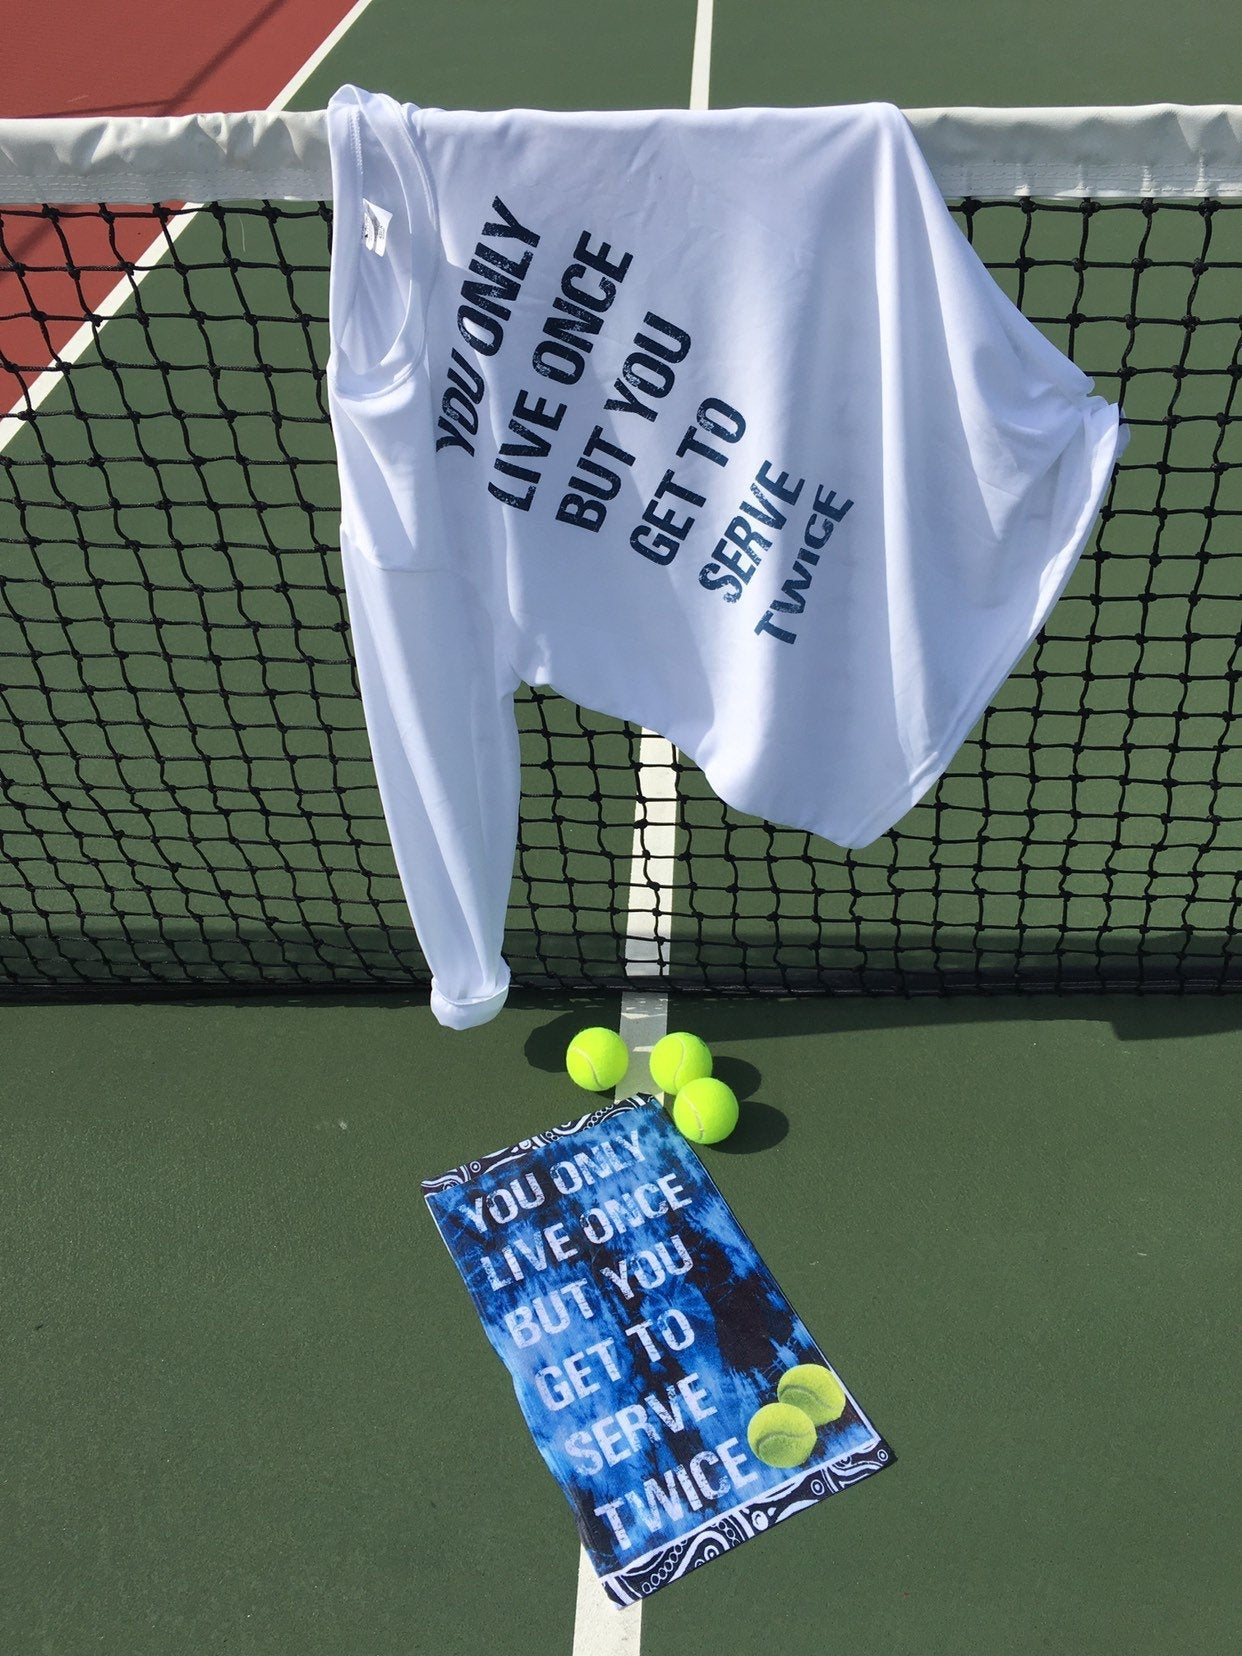 Tennis towel, tennis graphic towel